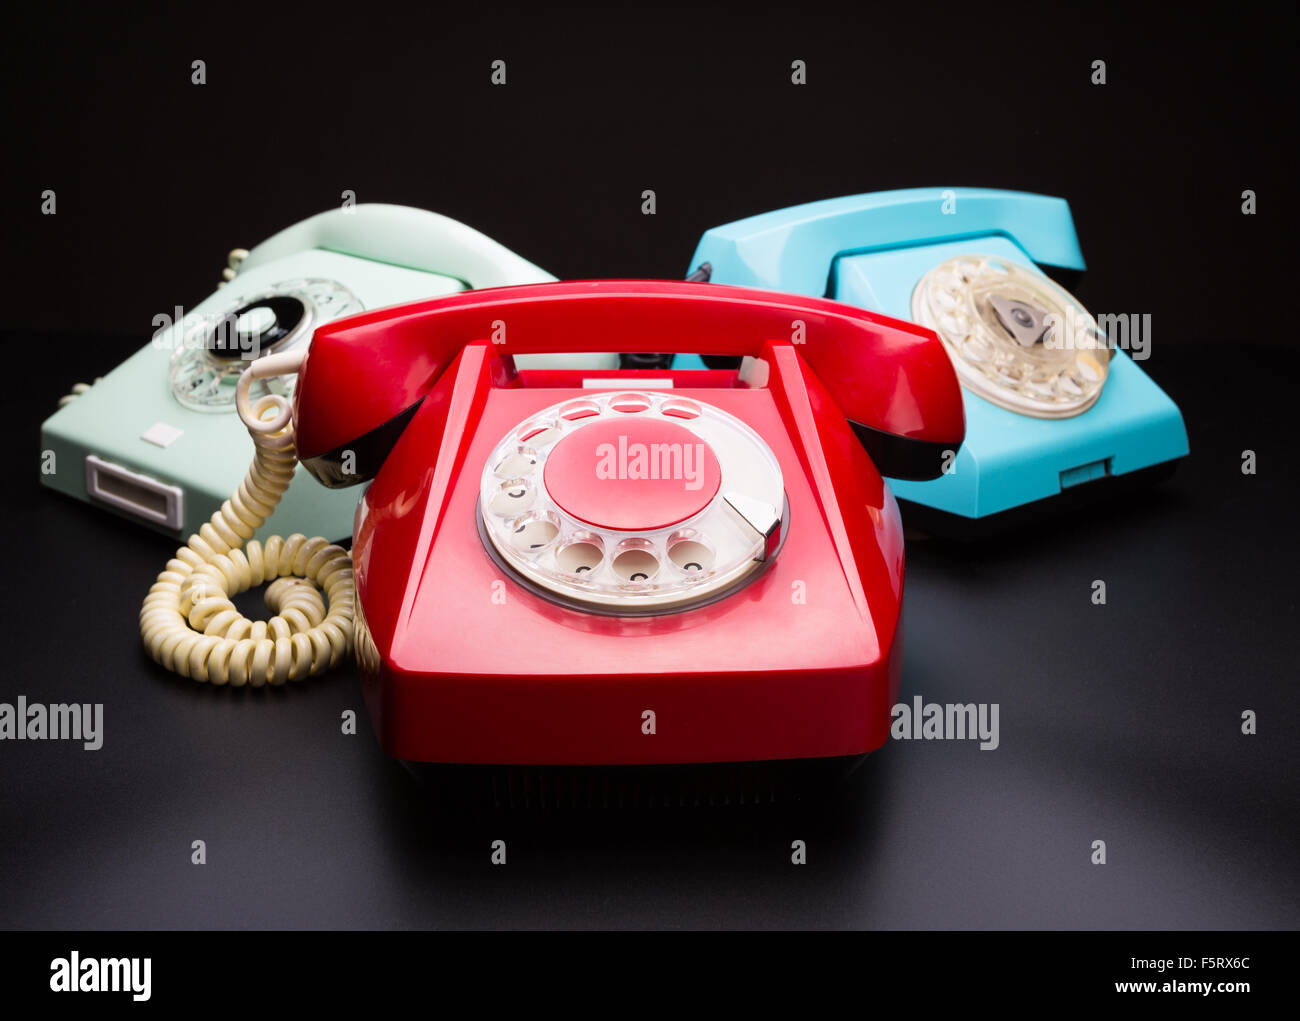 Three old telephones. Wide angle view - Stock Image